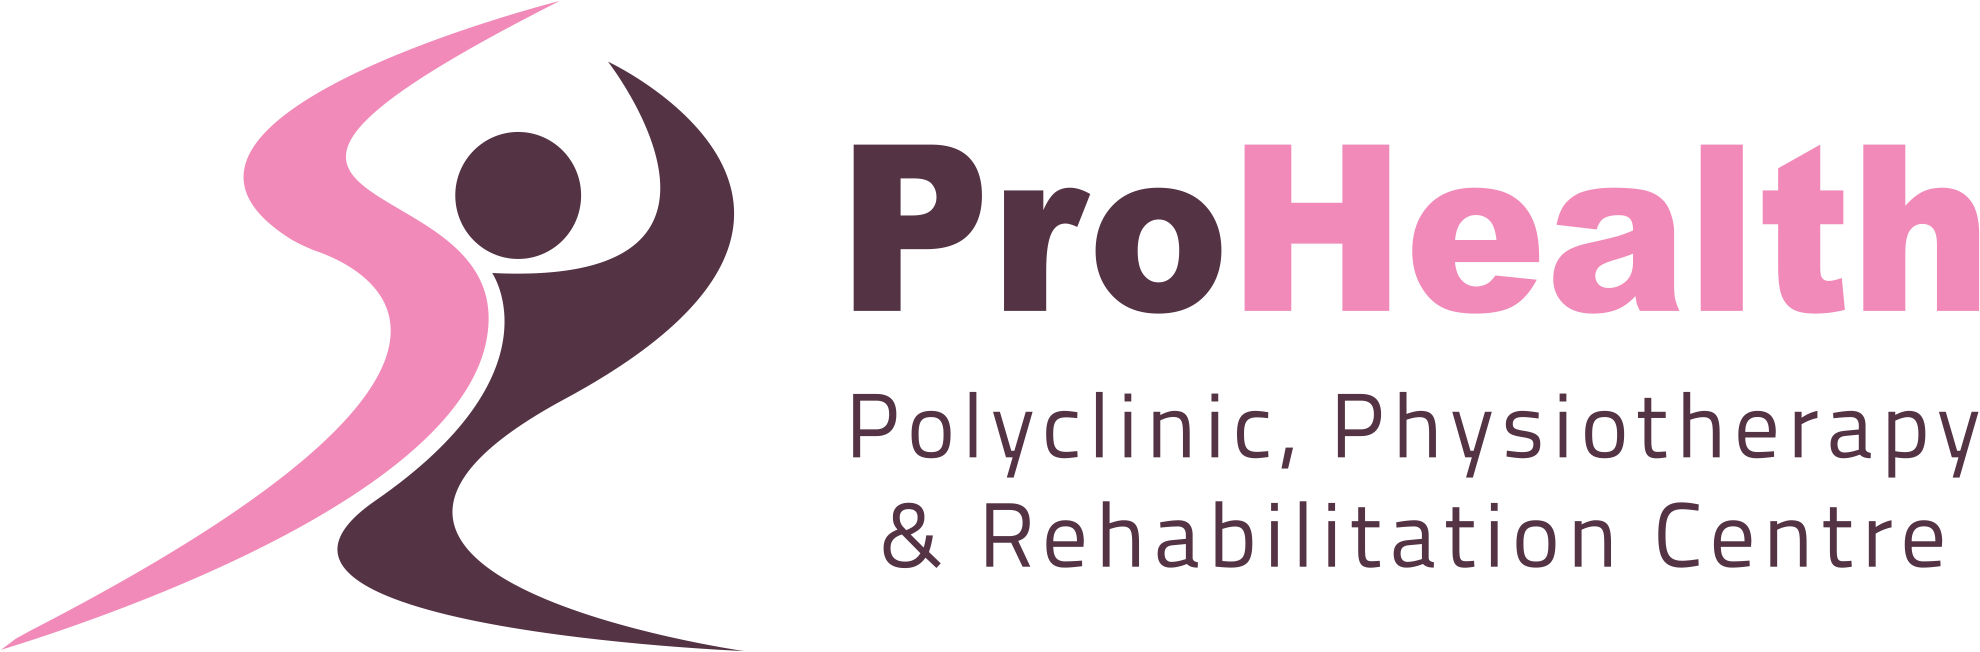 Prohealth Multispeciality, Orthopaedic and Physiotherapy Centre